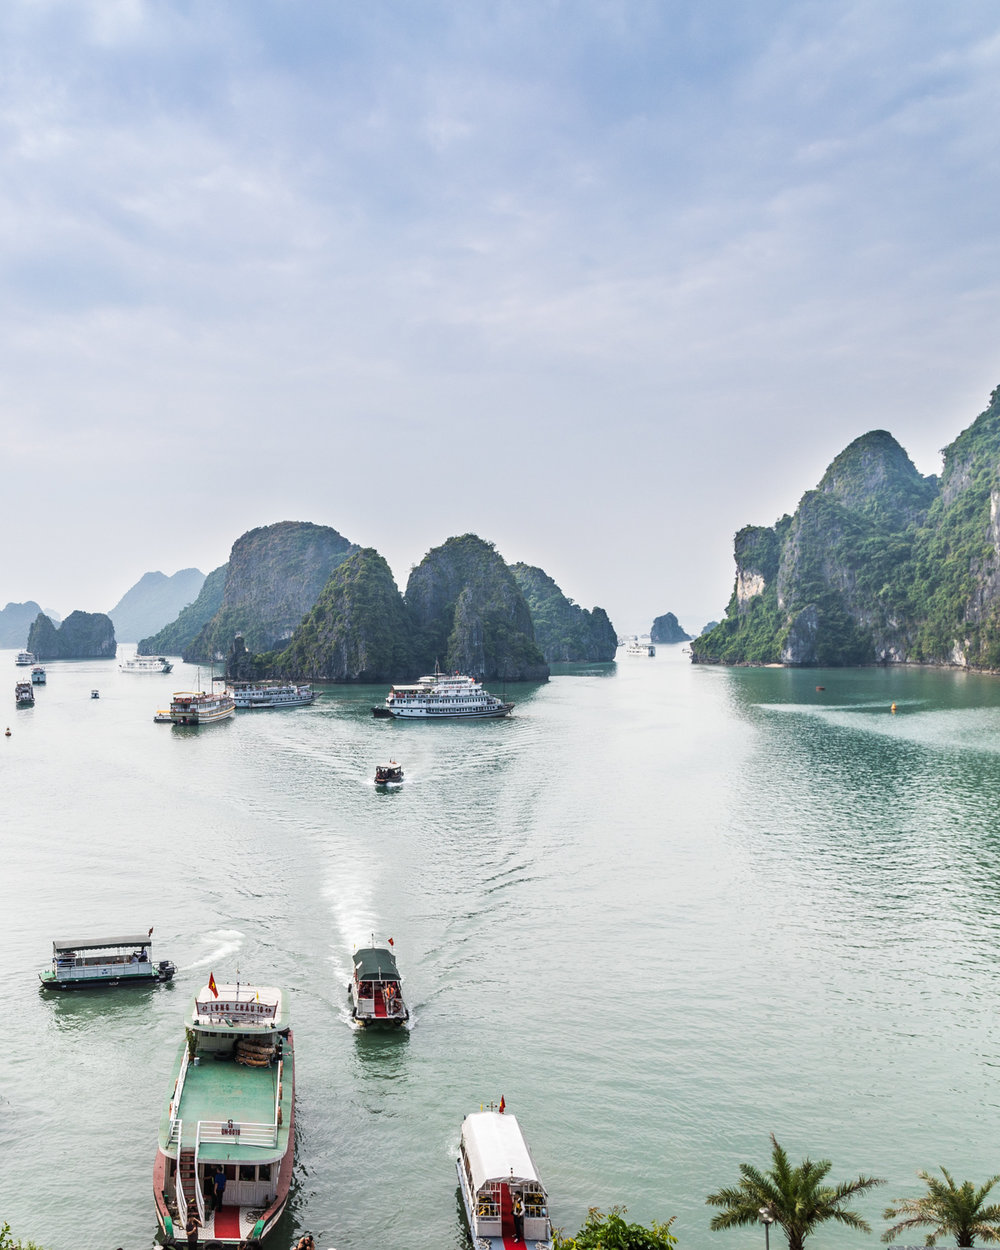 Overnight Halong Bay Cruise - The trip